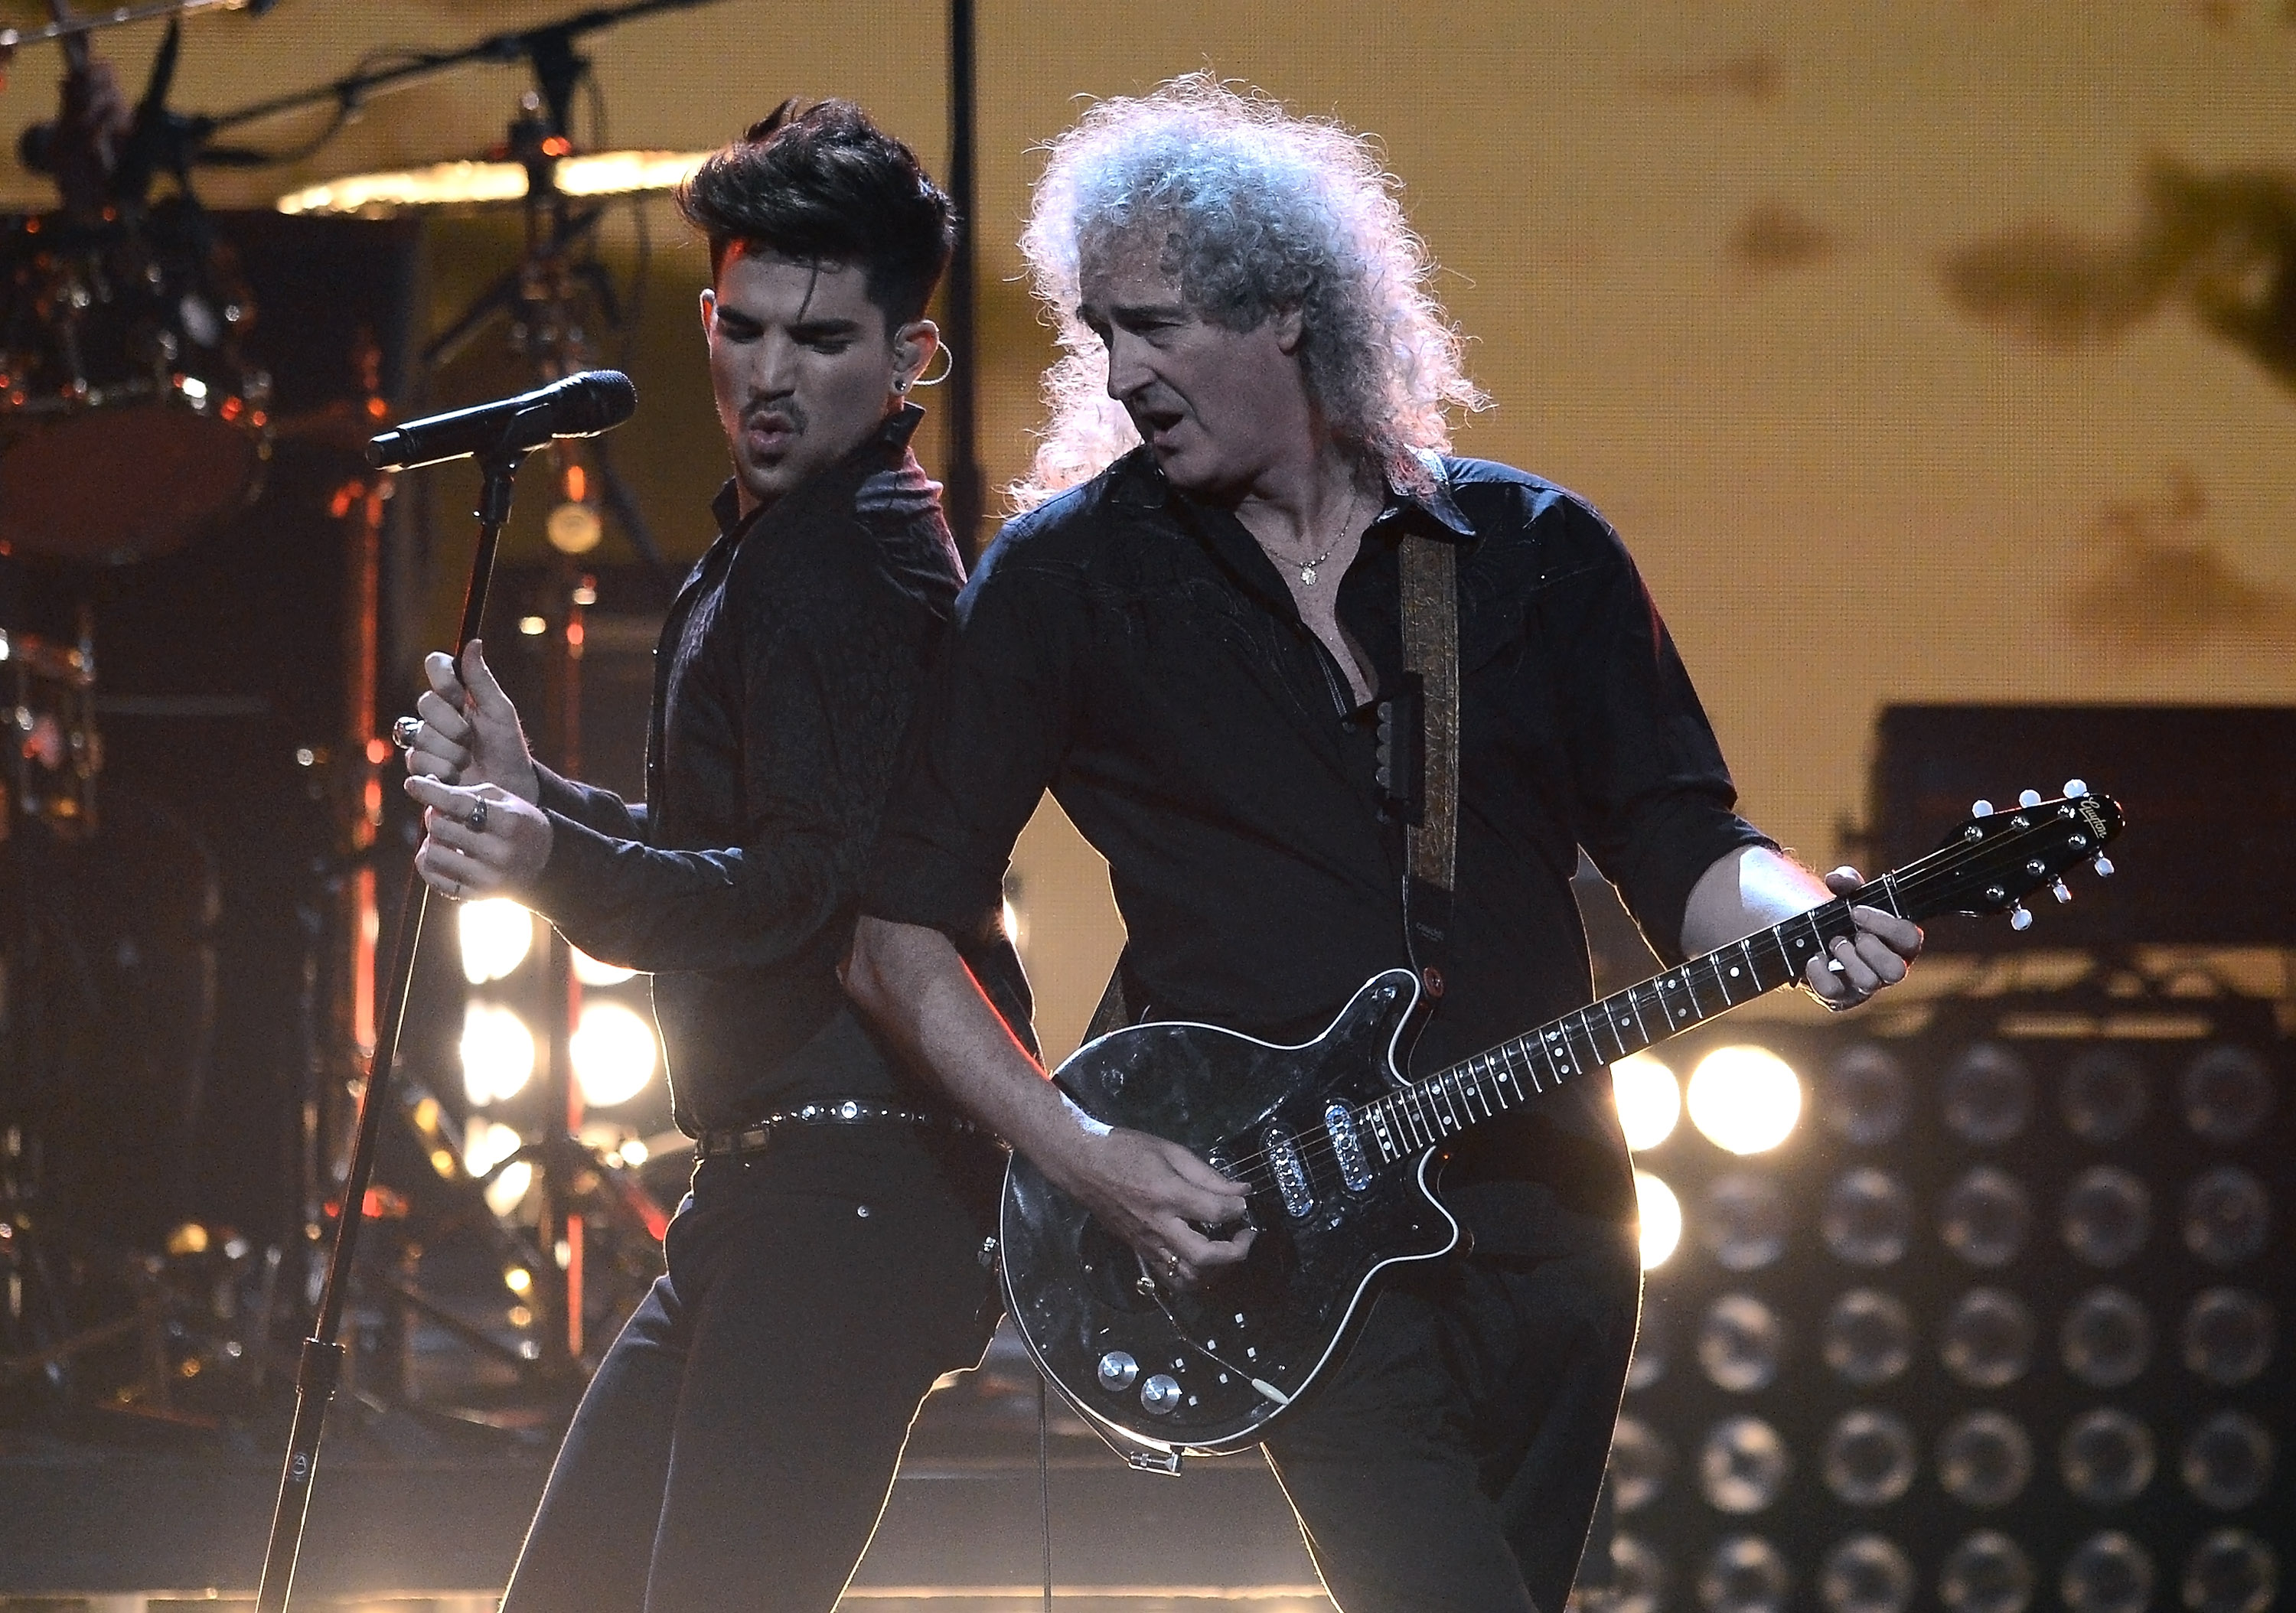 LAS VEGAS, NV - SEPTEMBER 20:  Singer Adam Lambert (L) and guitarist Brian May of Queen perform during the iHeartRadio Music